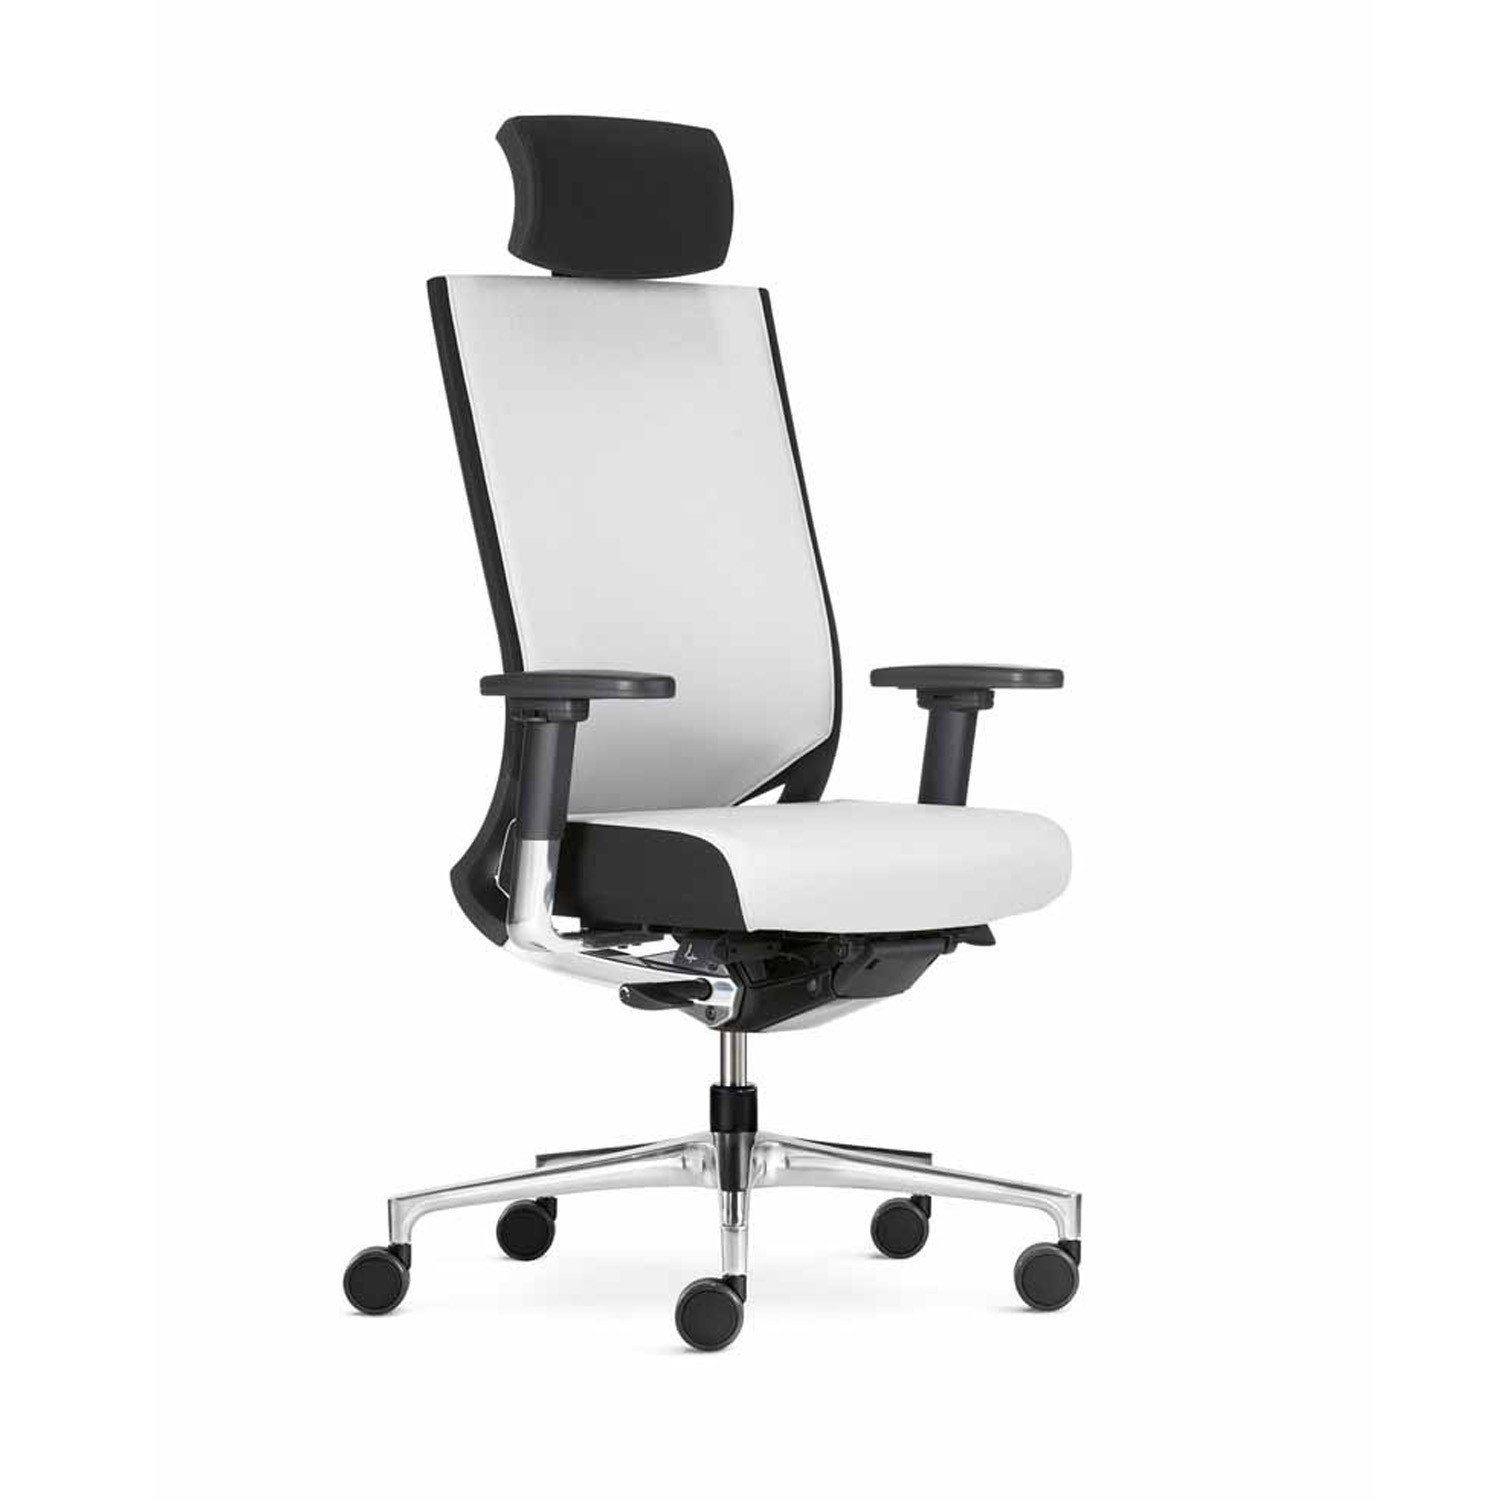 neck support for office chair india hanging on sale duera 24h task ergonomic chairs apres